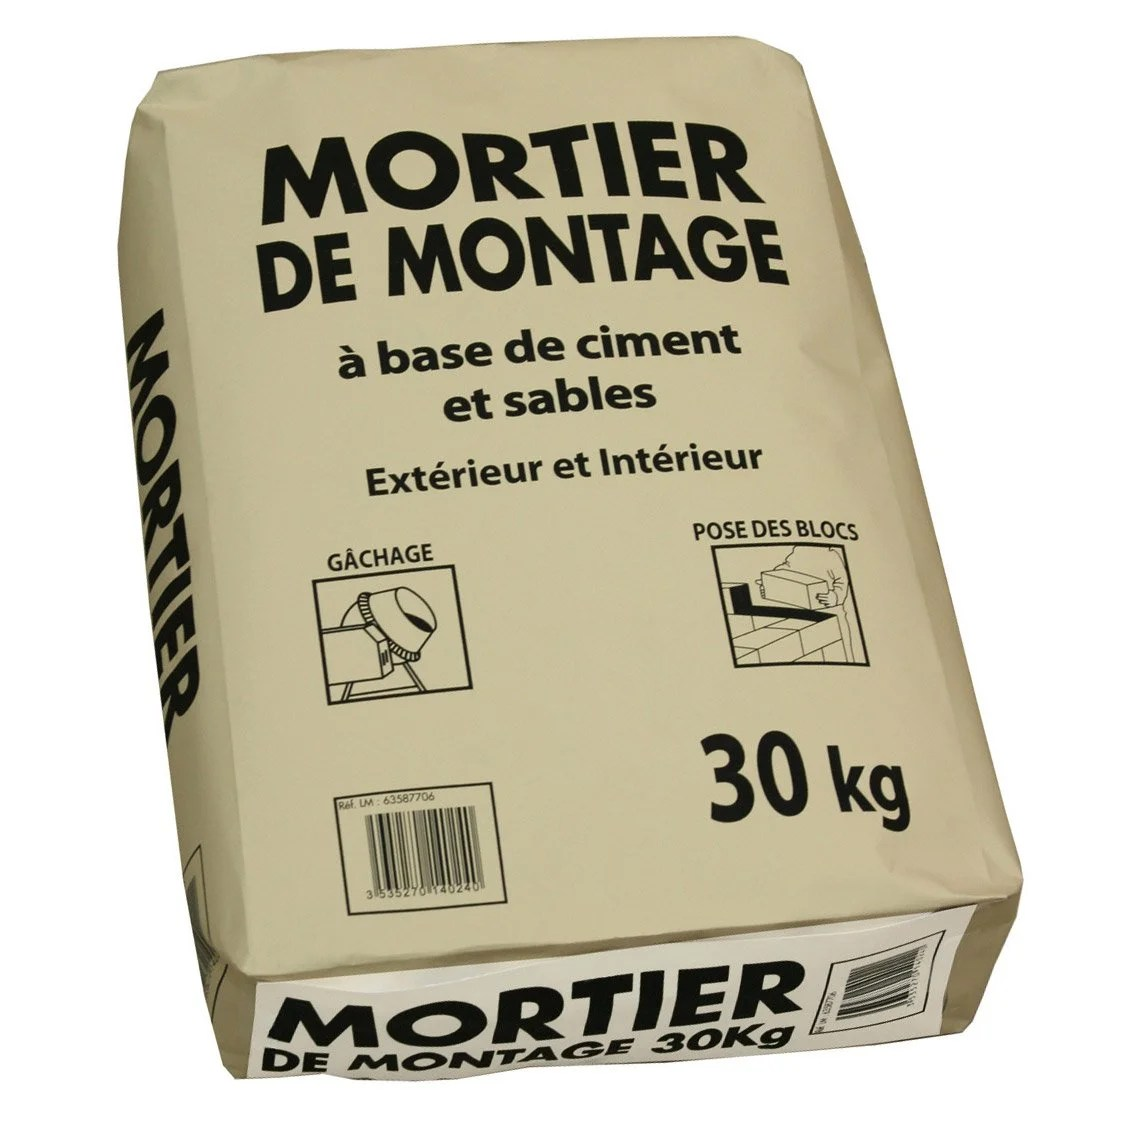 Sable Leroy Merlin Mortier 30 Kg | Leroy Merlin